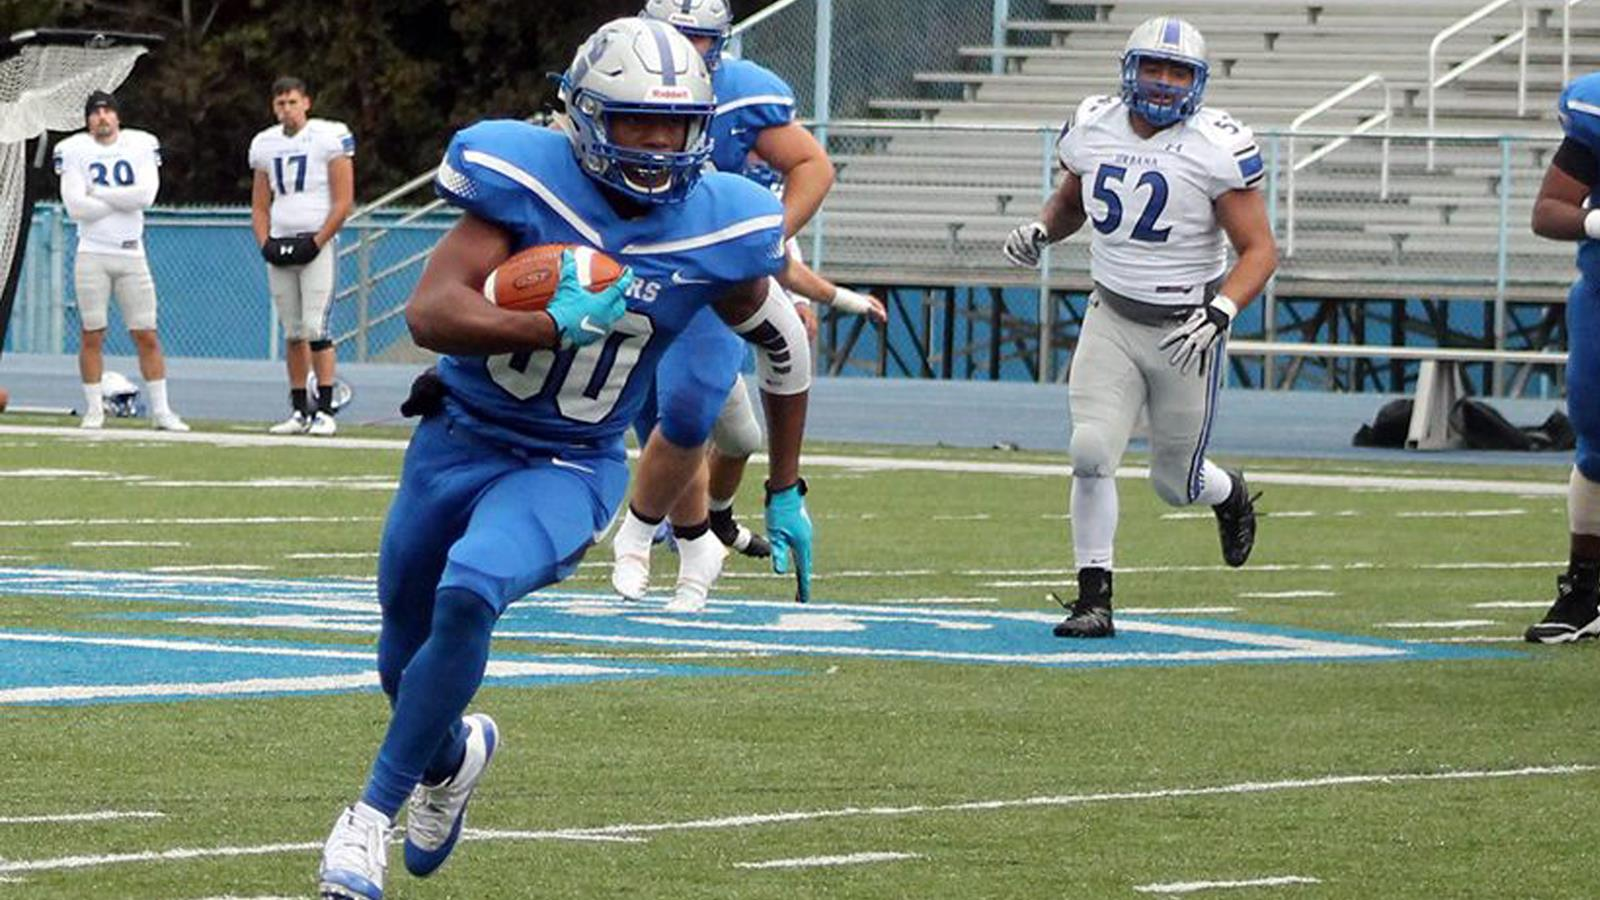 Football - Glenville State College Athletics